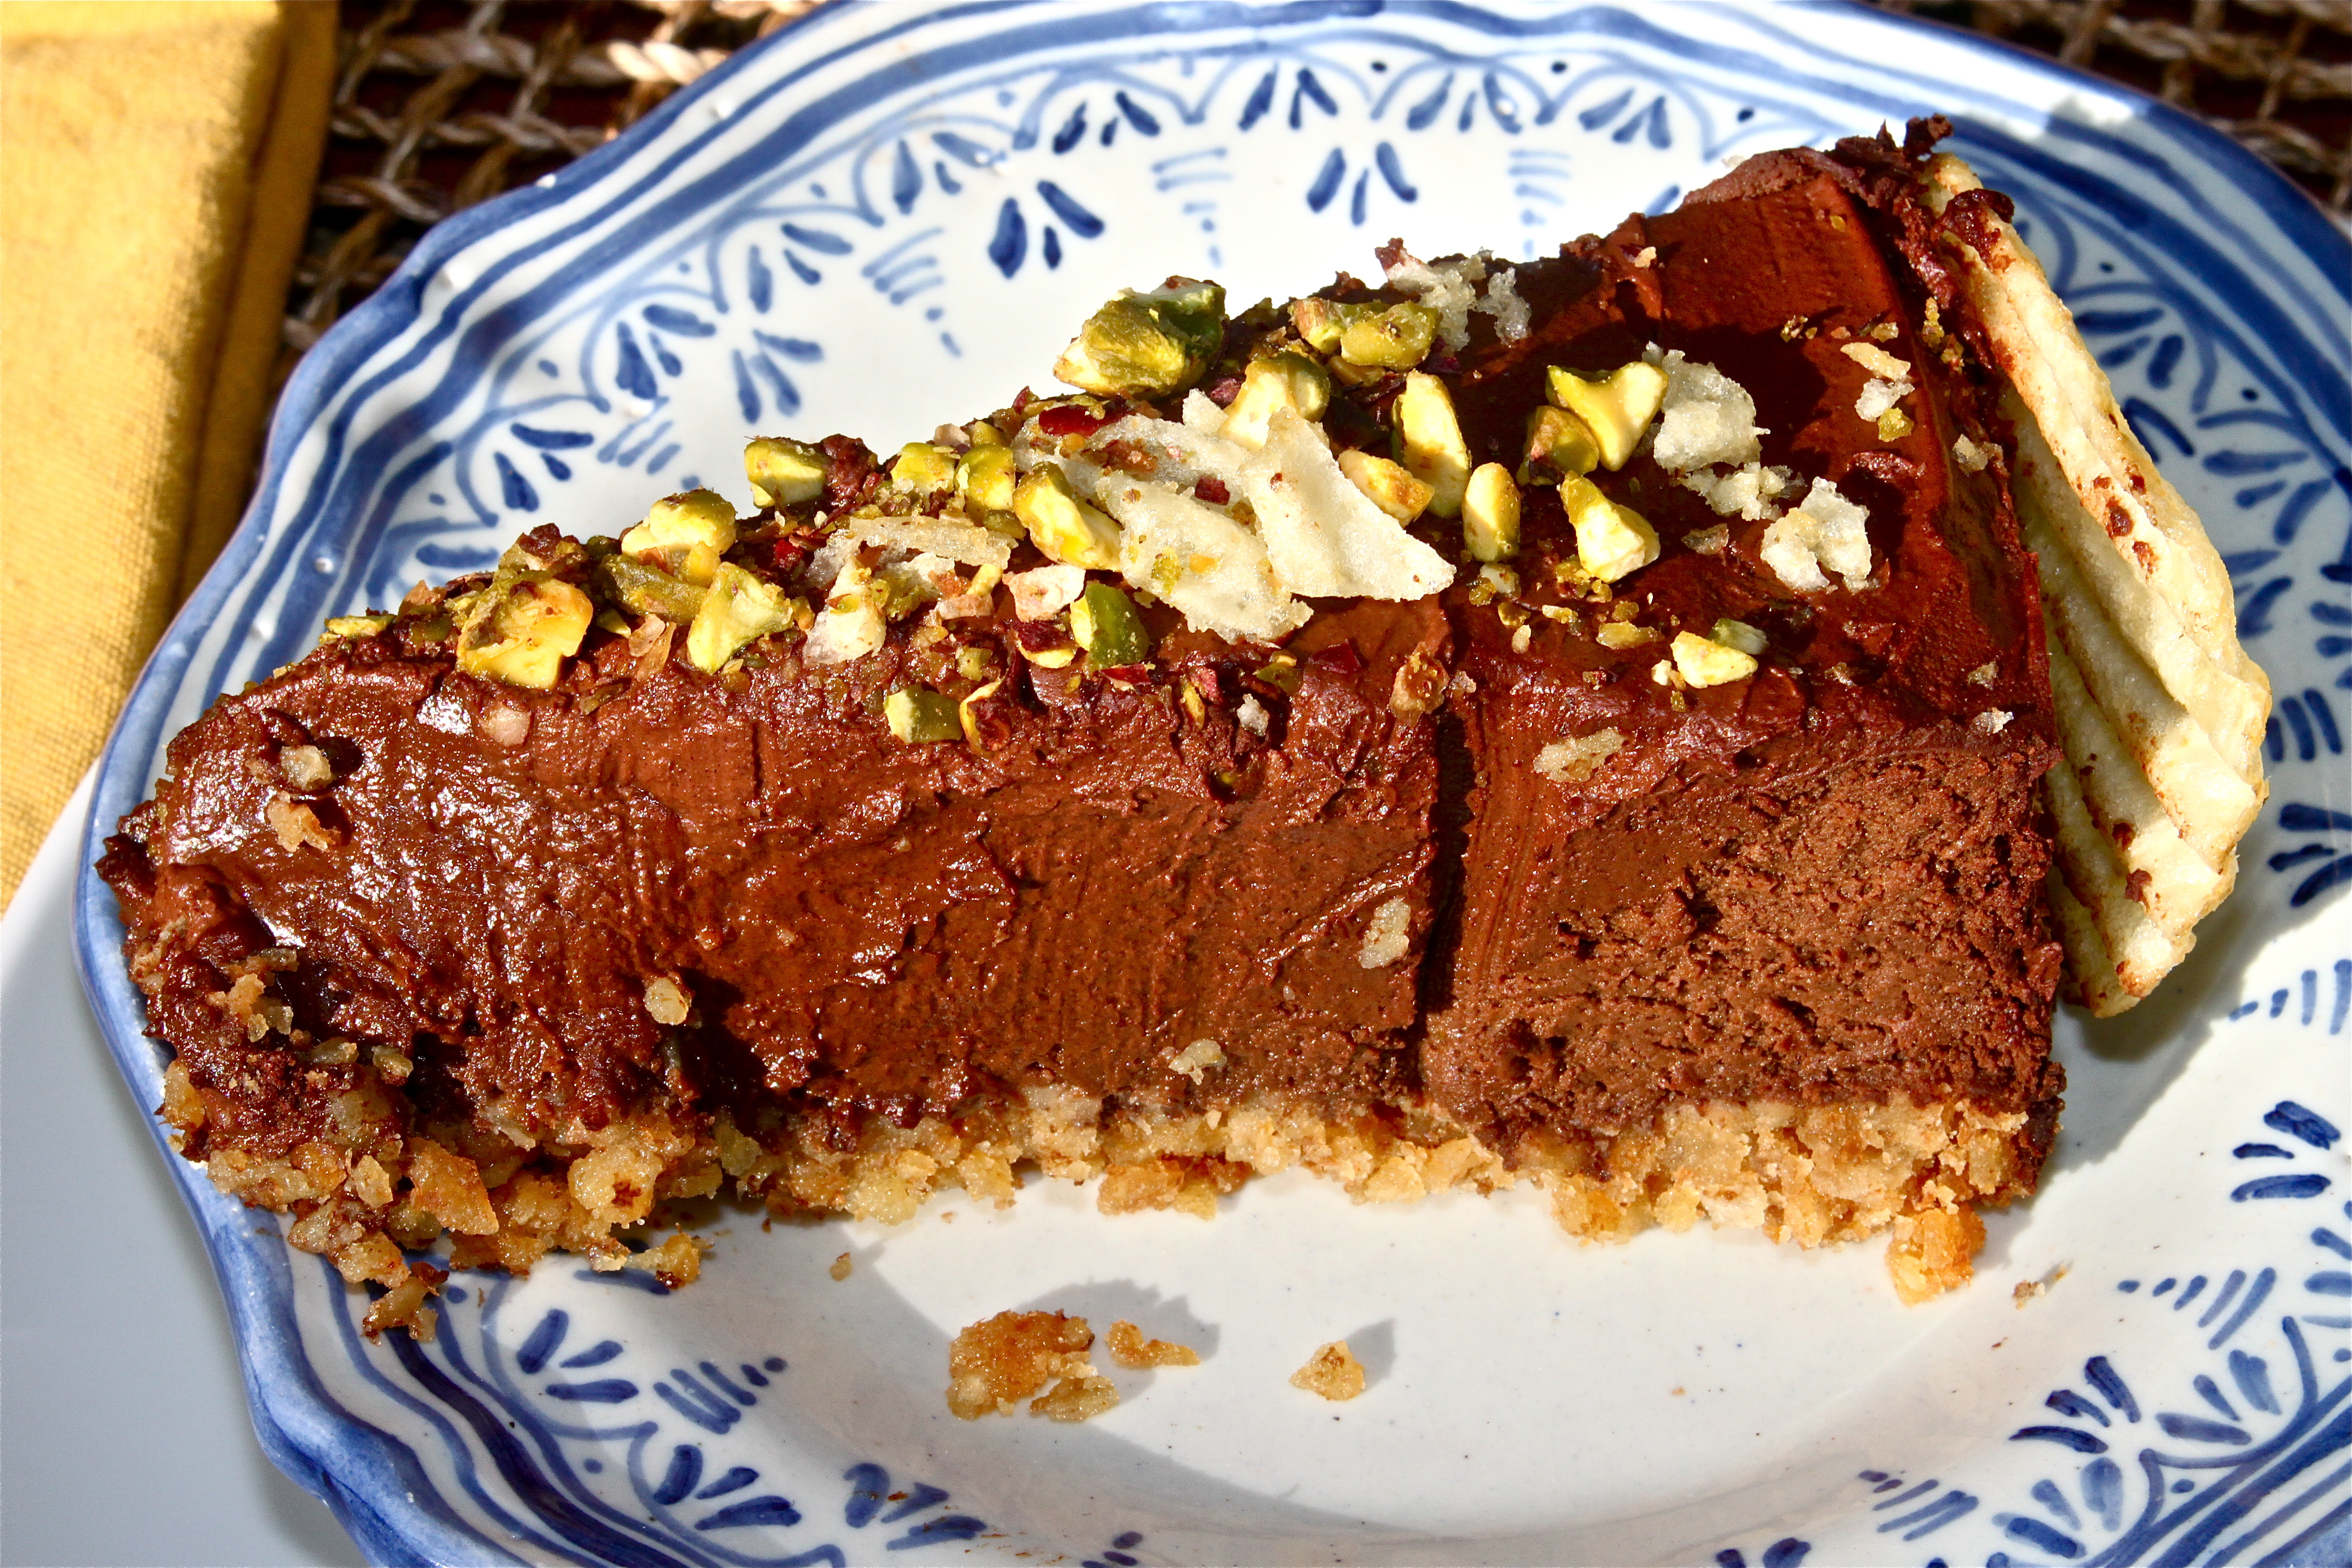 Flourless Dark Chocolate Cake with Pistachios and a Potato Chip Crust